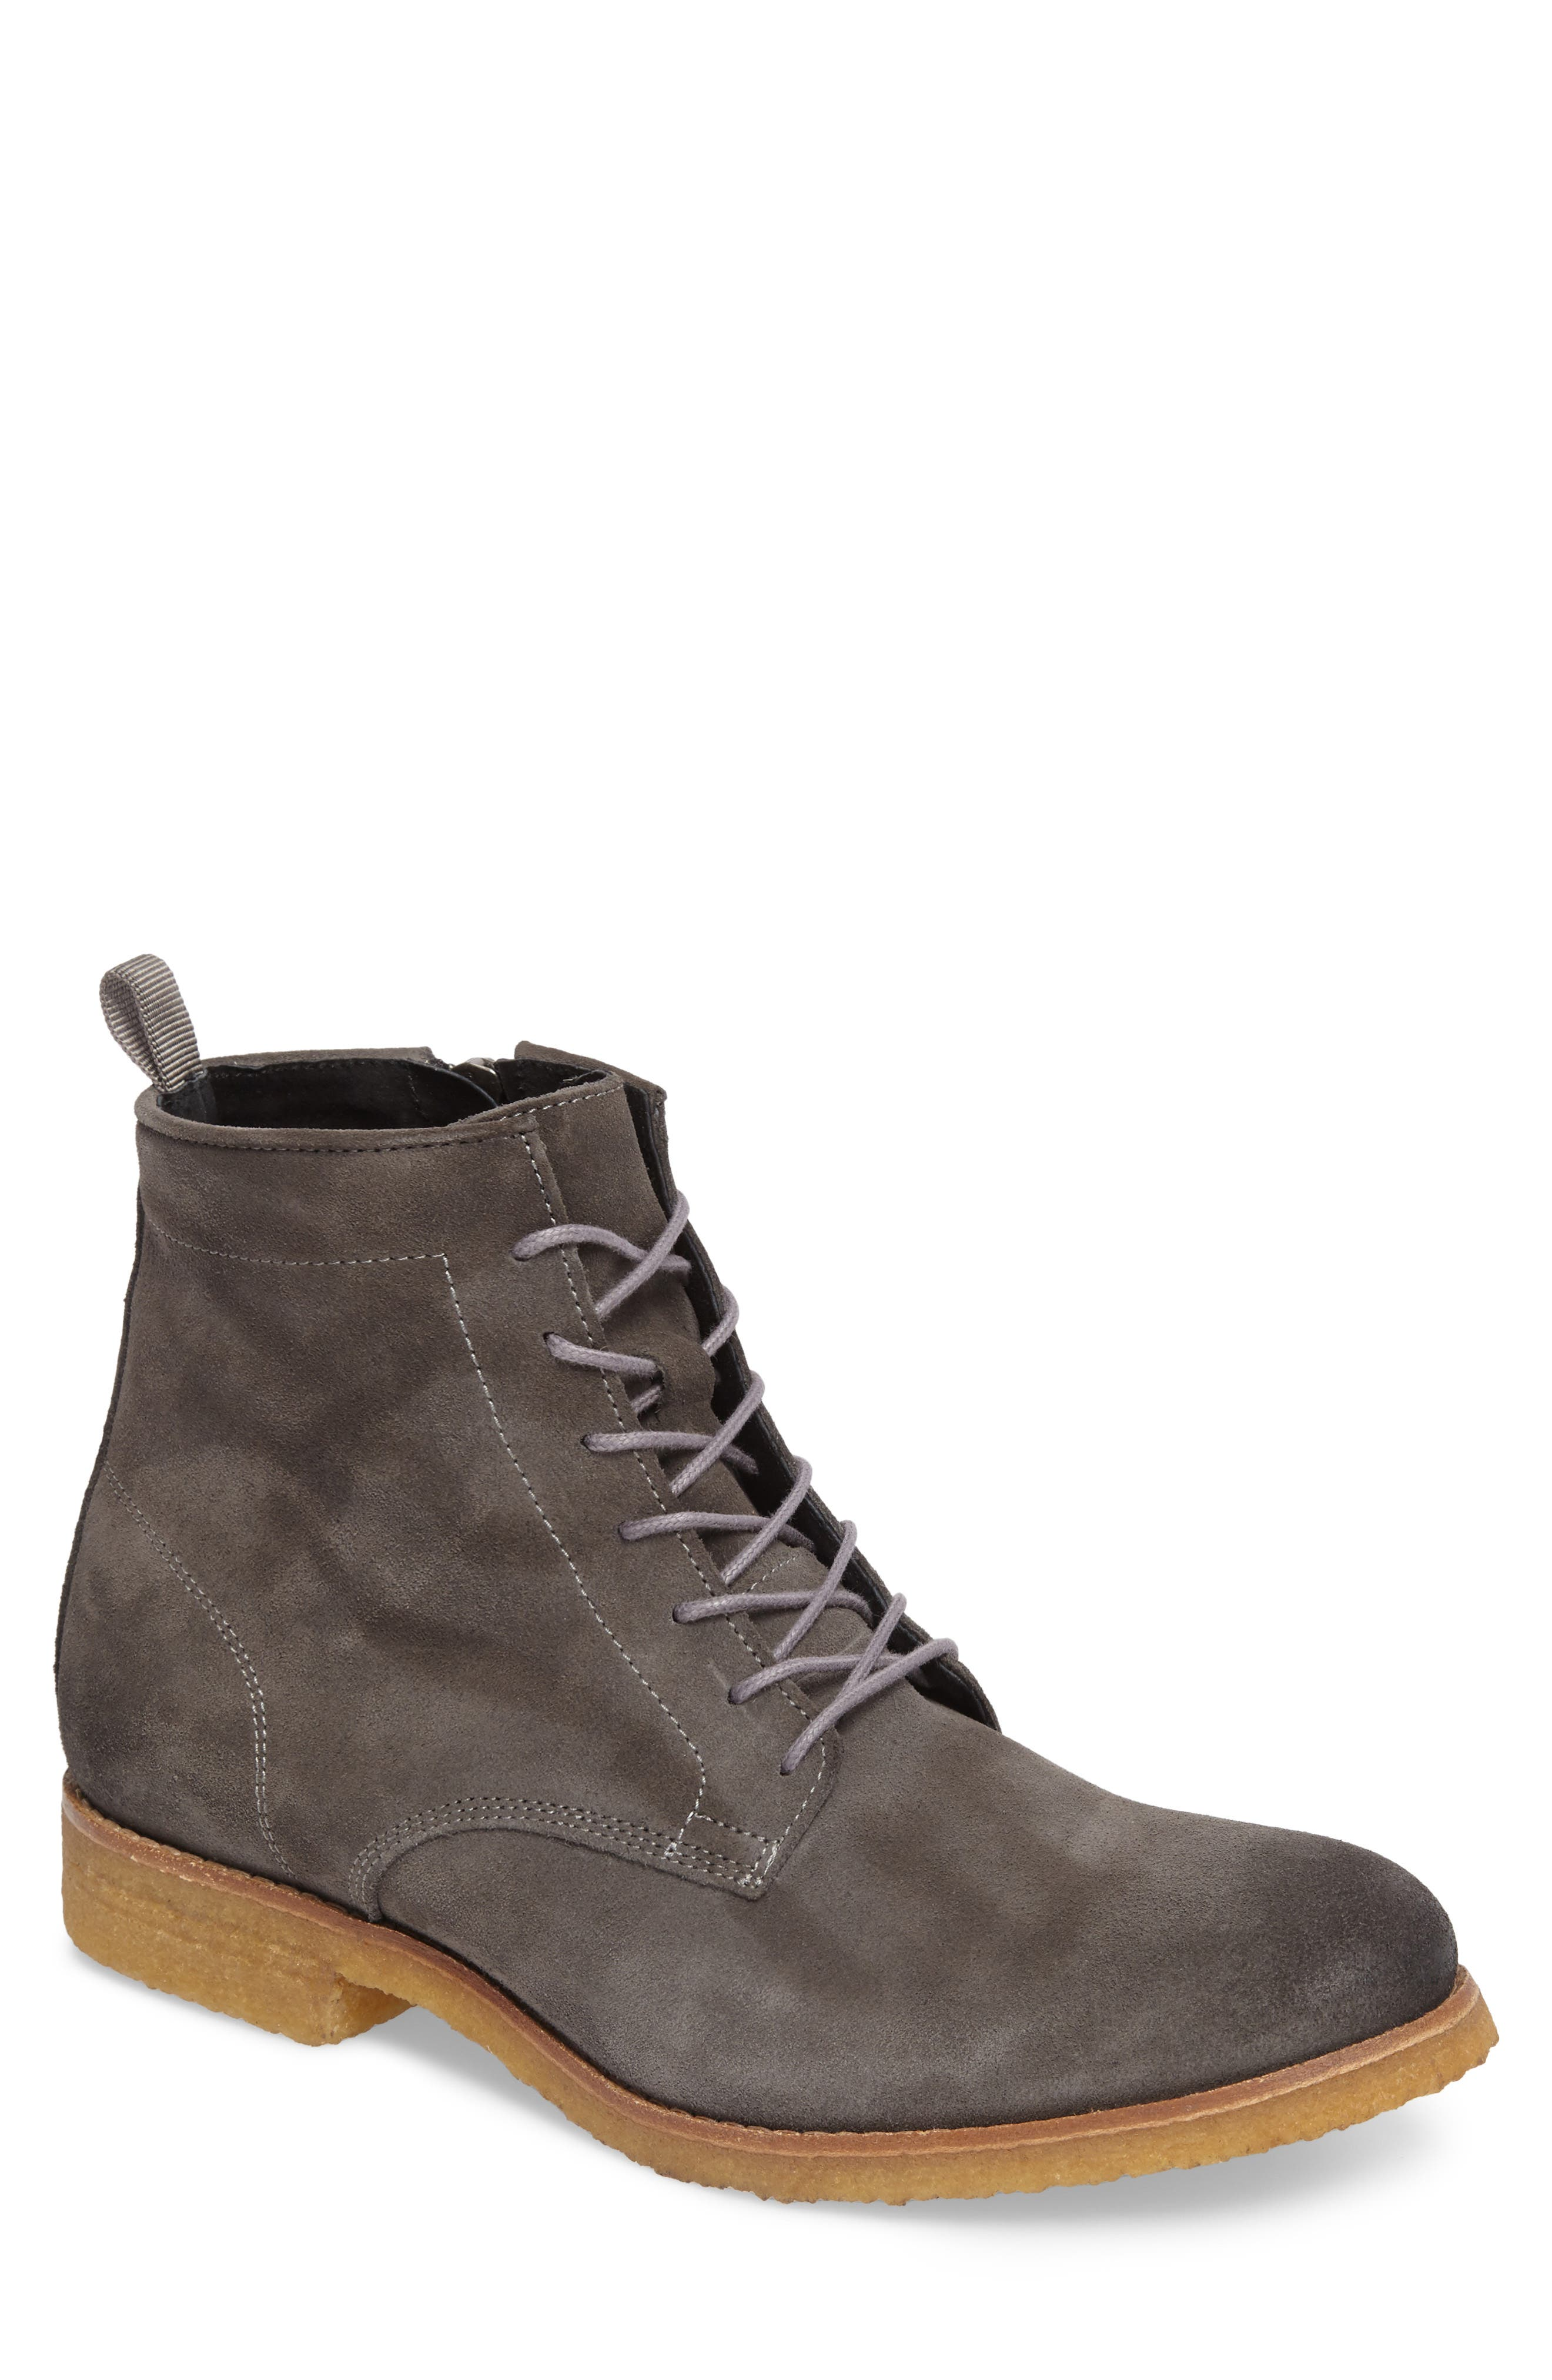 Alternate Image 1 Selected - Supply Lab Jonah Plain Toe Boot (Men)